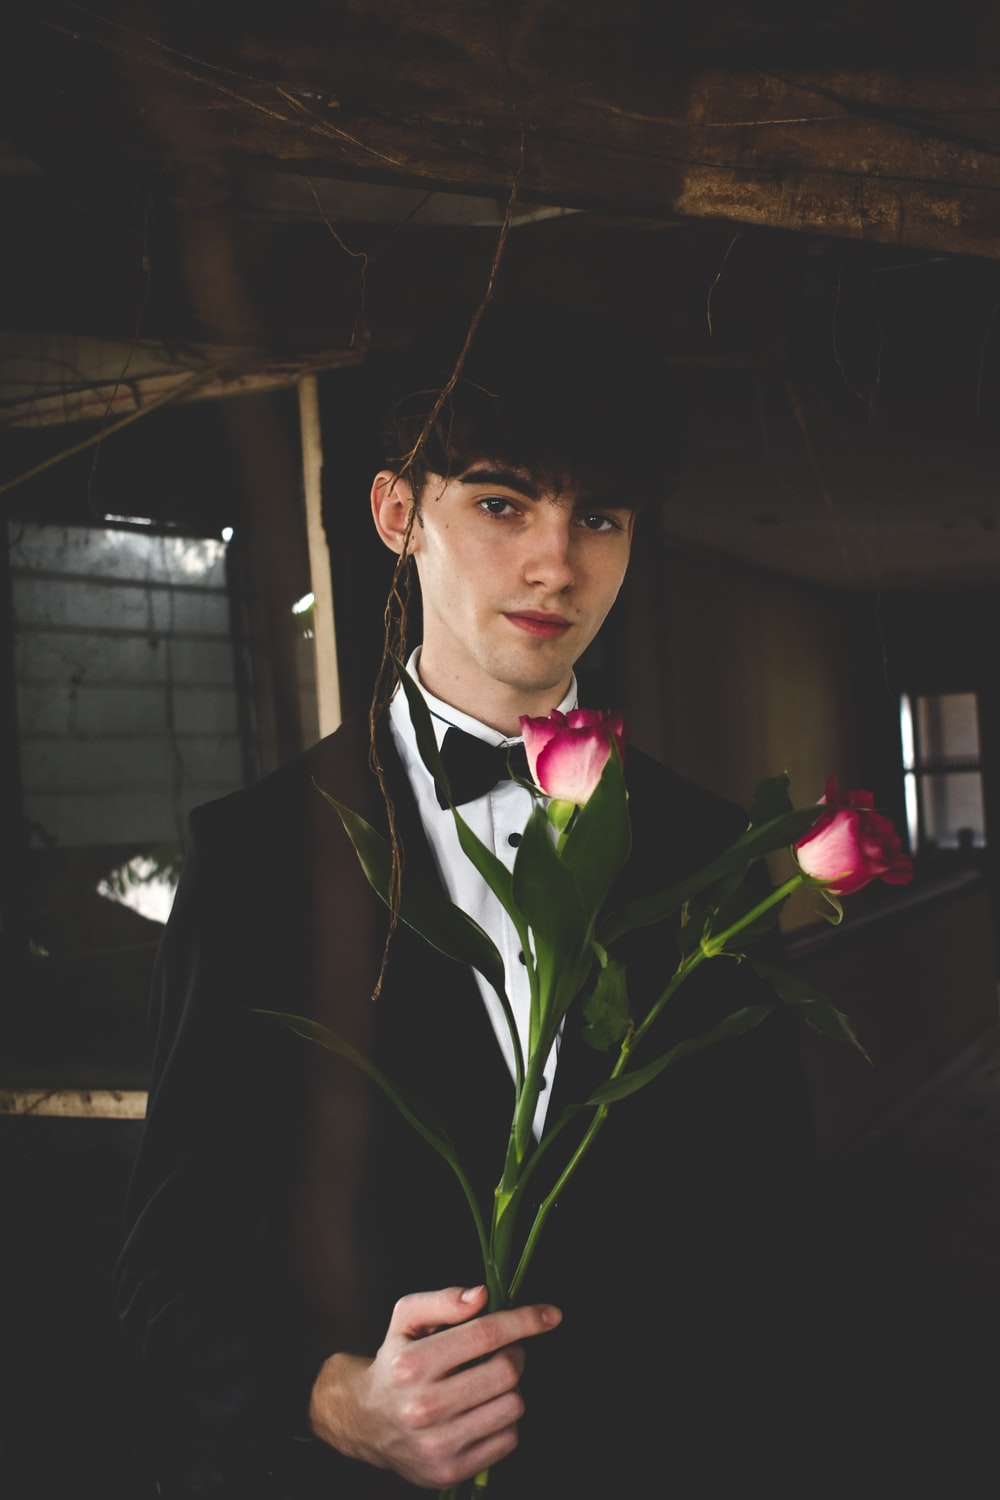 man wearing black and white formal suit holding two red roses